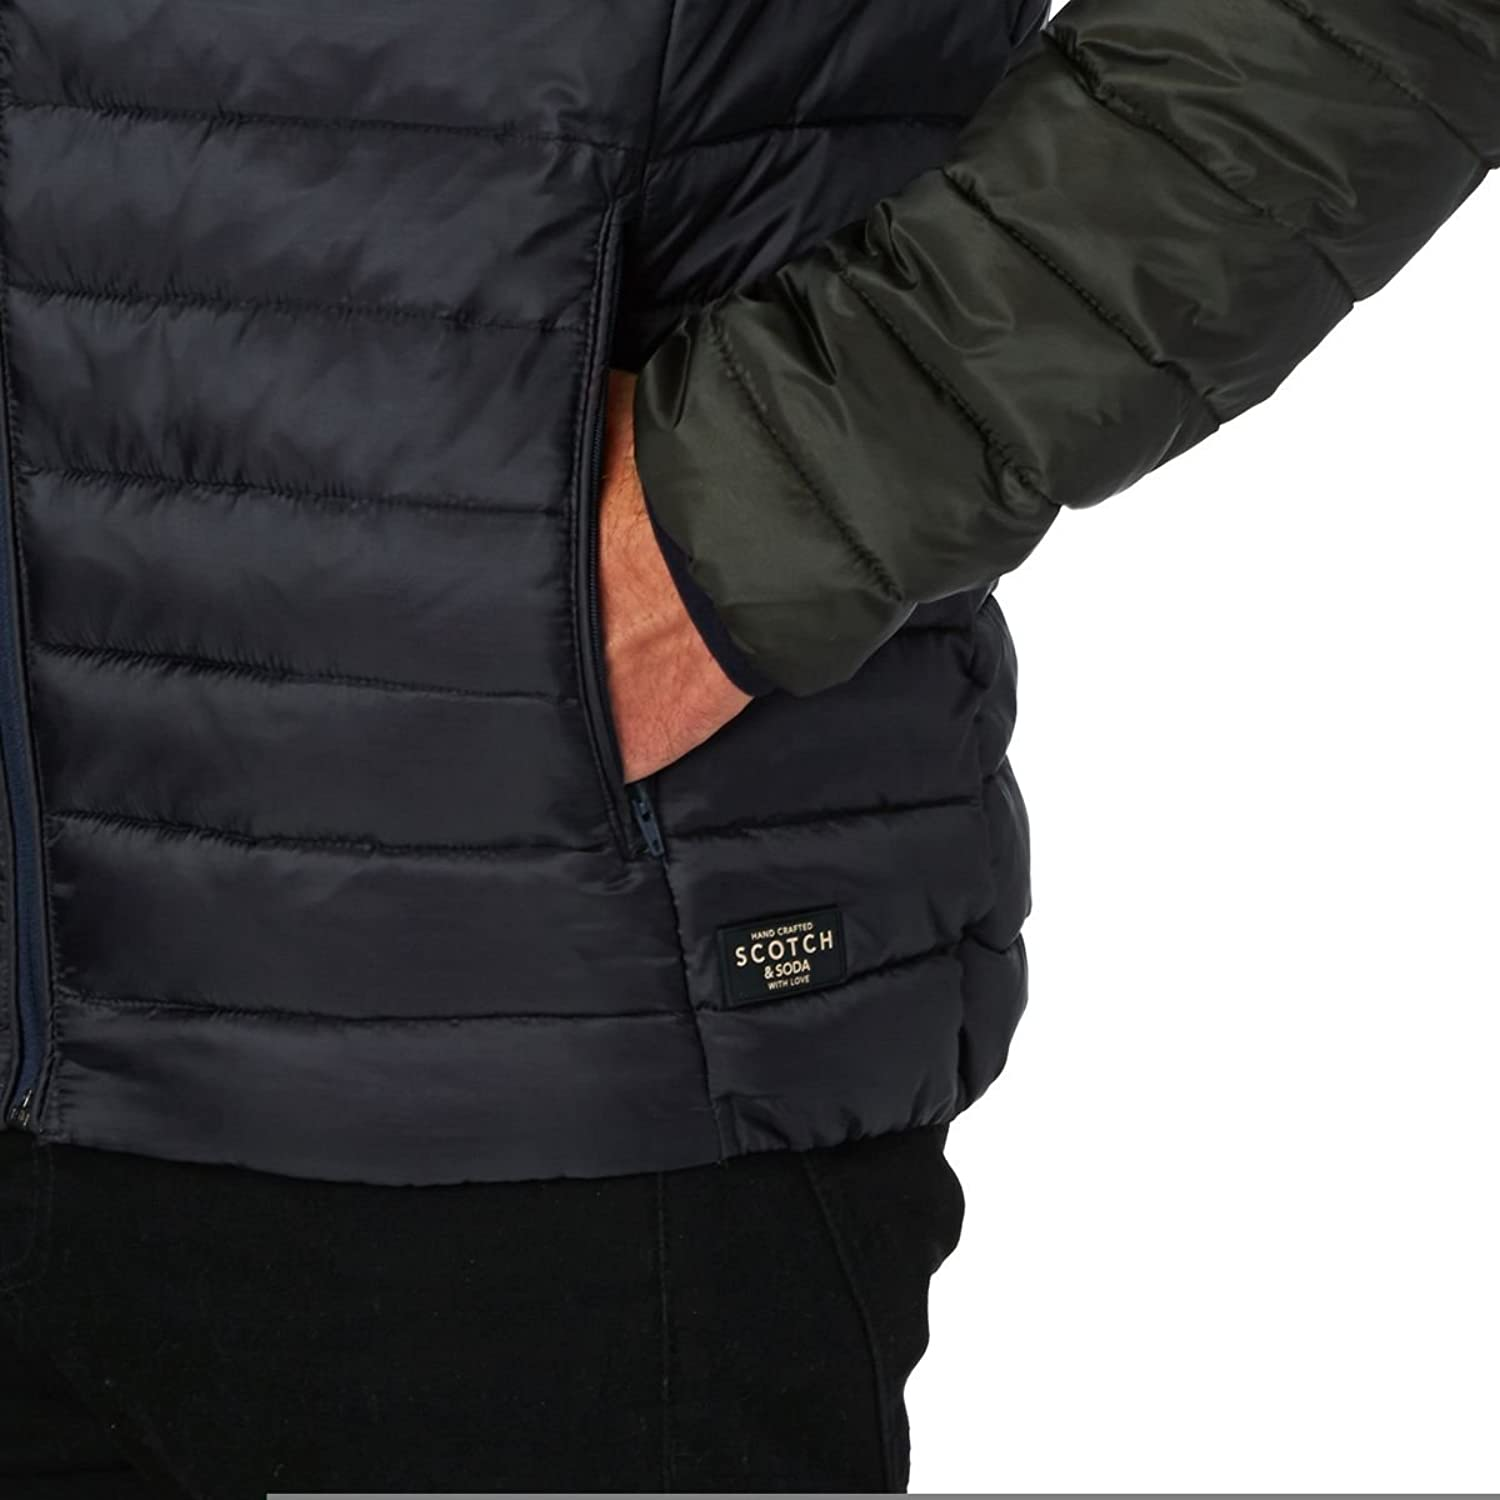 Clearance How Much Mens Classic Quilted Hooded Bodywarmer in Nylon Quality Gilet Scotch & Soda Limited Edition Sale Online Buy Cheap Shop For Manchester ajkWMrhSre